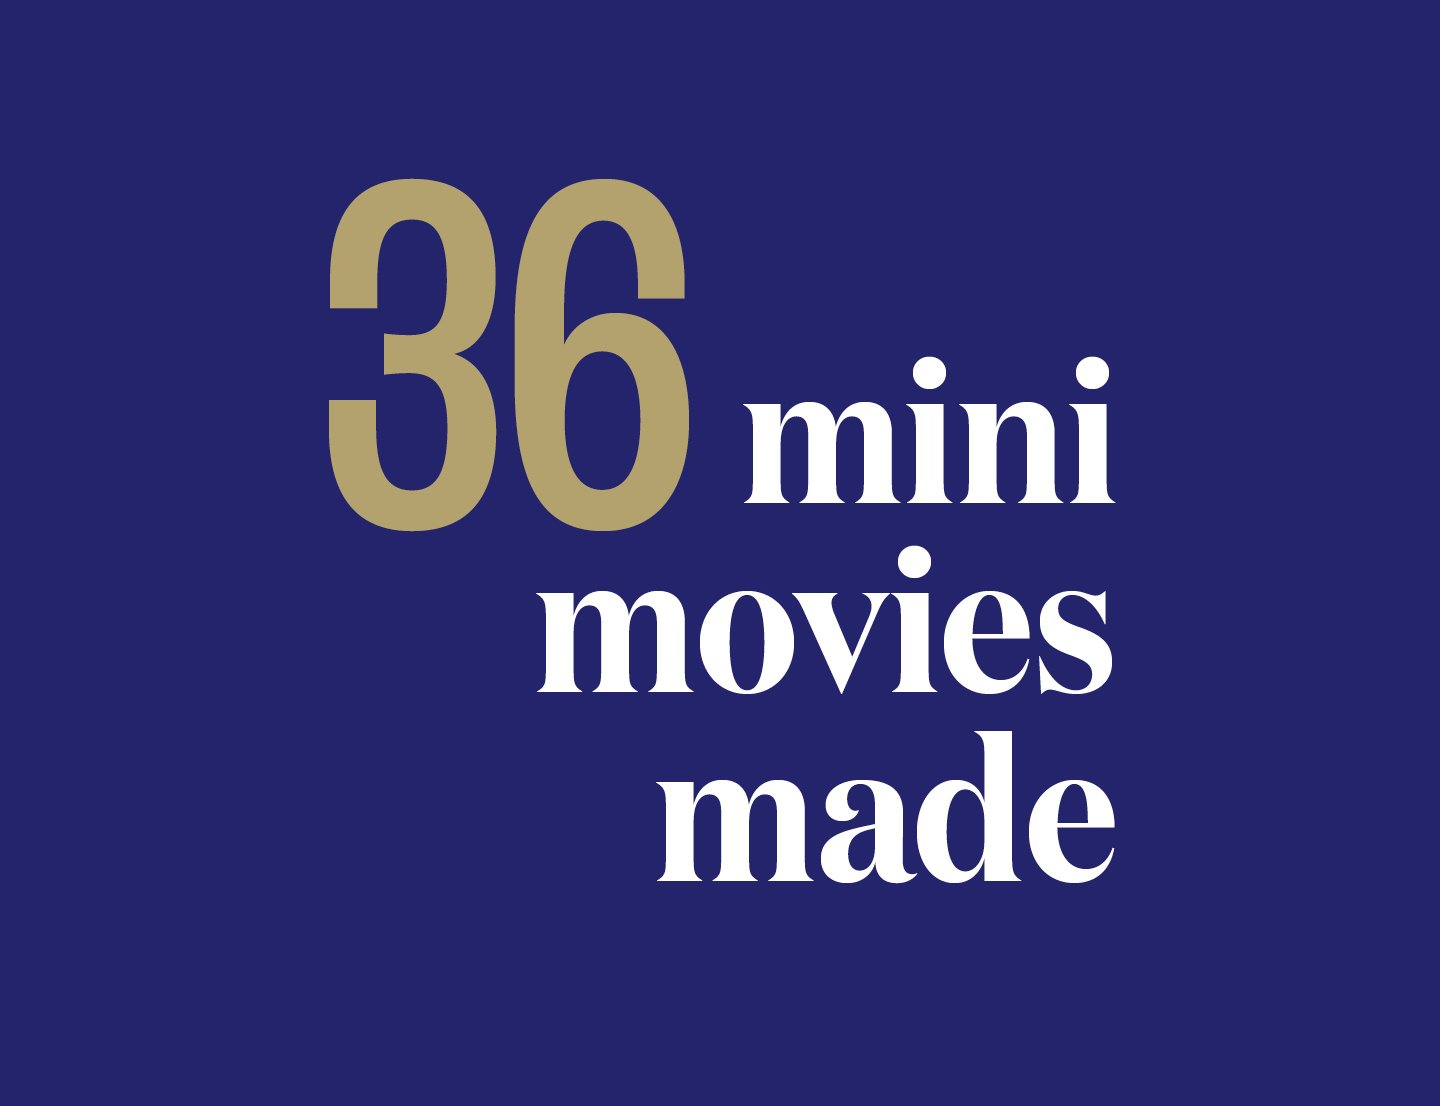 36 mini movies made